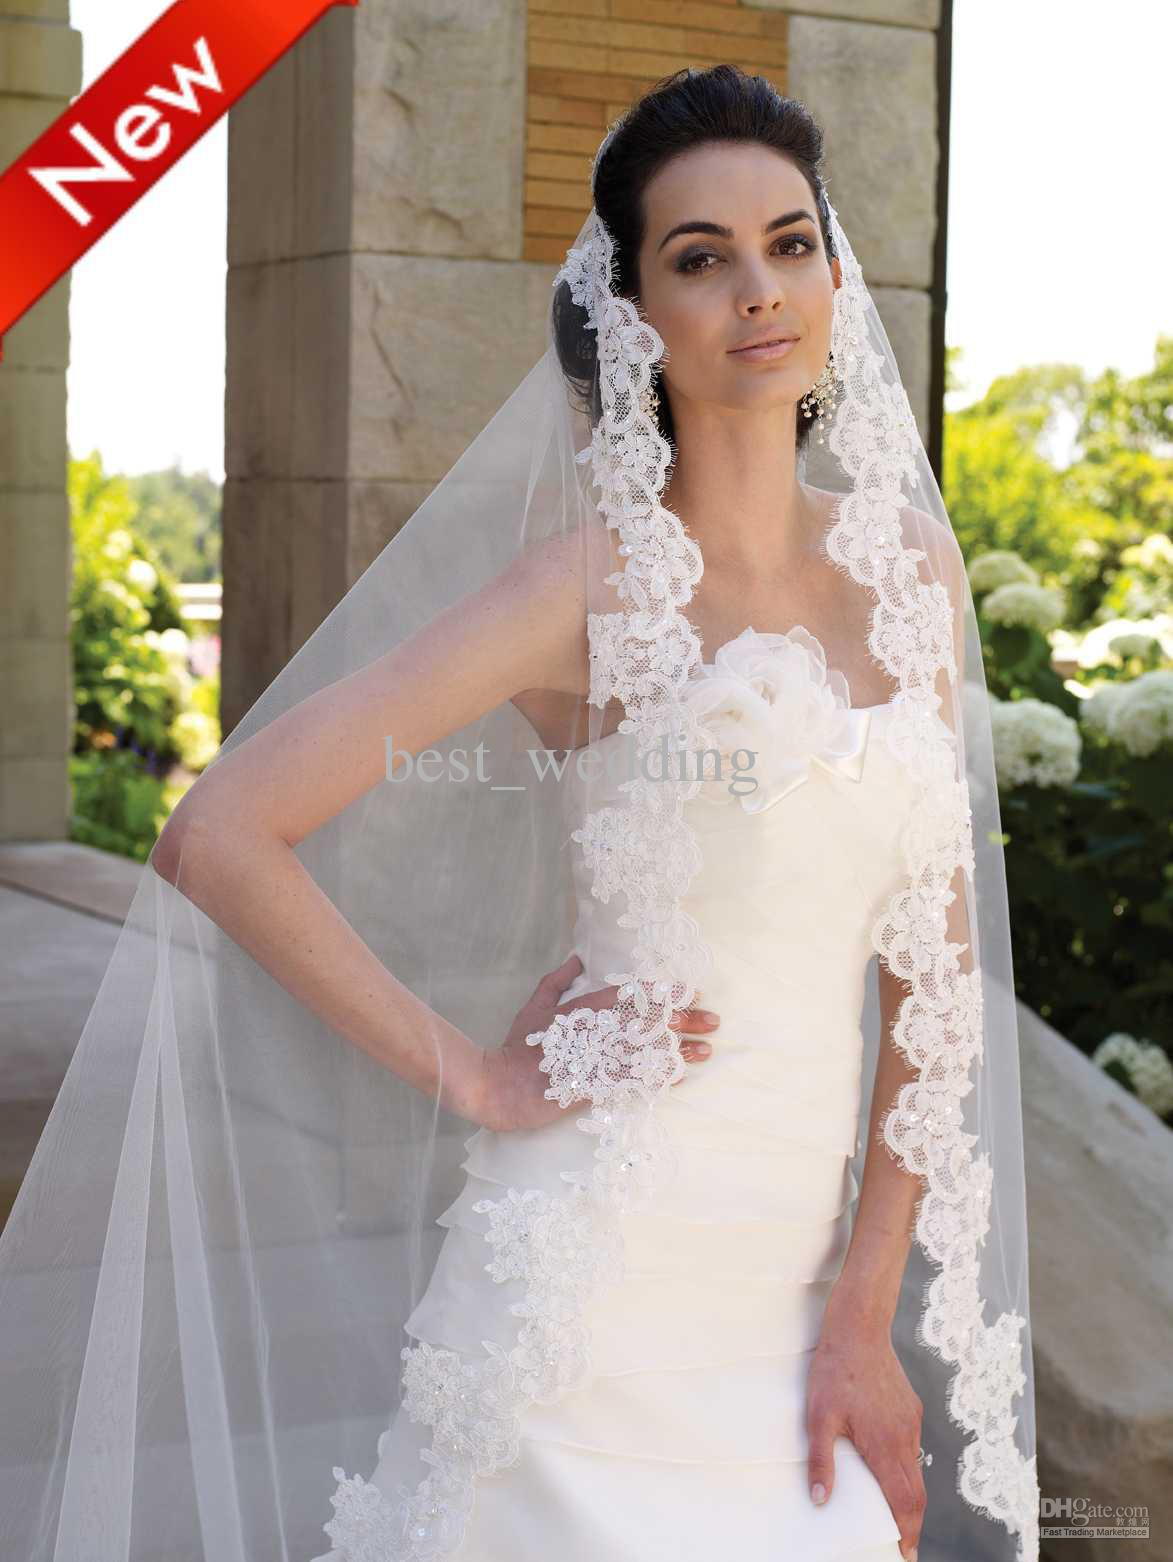 Lace Wedding Dress And Veil : Wedding veils romantic decoration